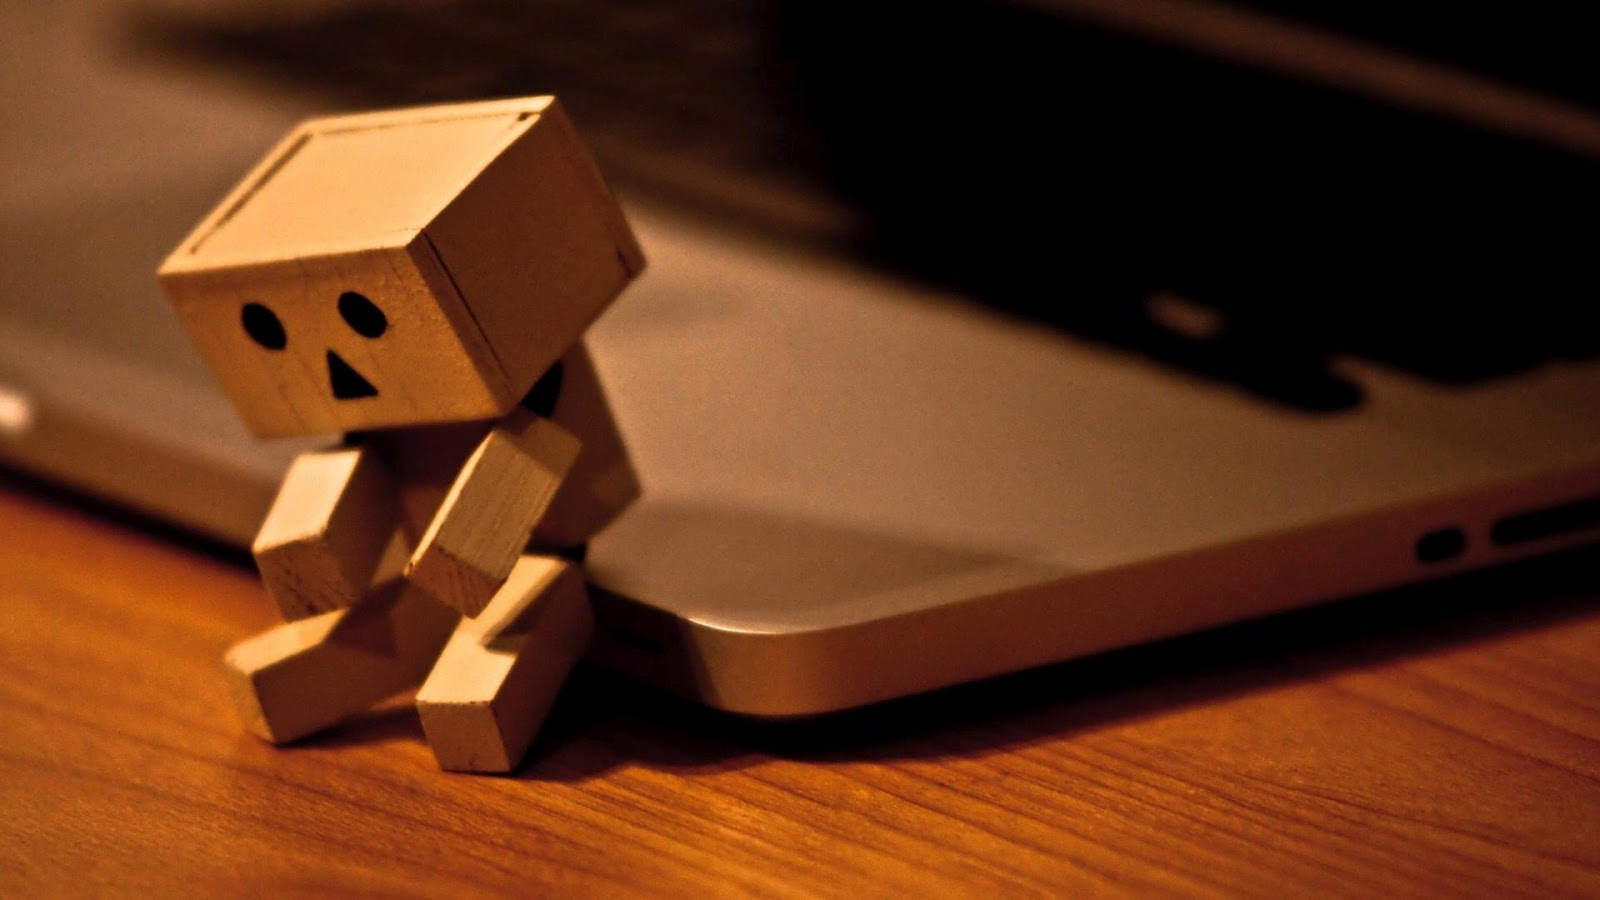 Danbo Love Sad HD Wallpaper 5036 Wallpaper ForWallpaperscom 1600x900